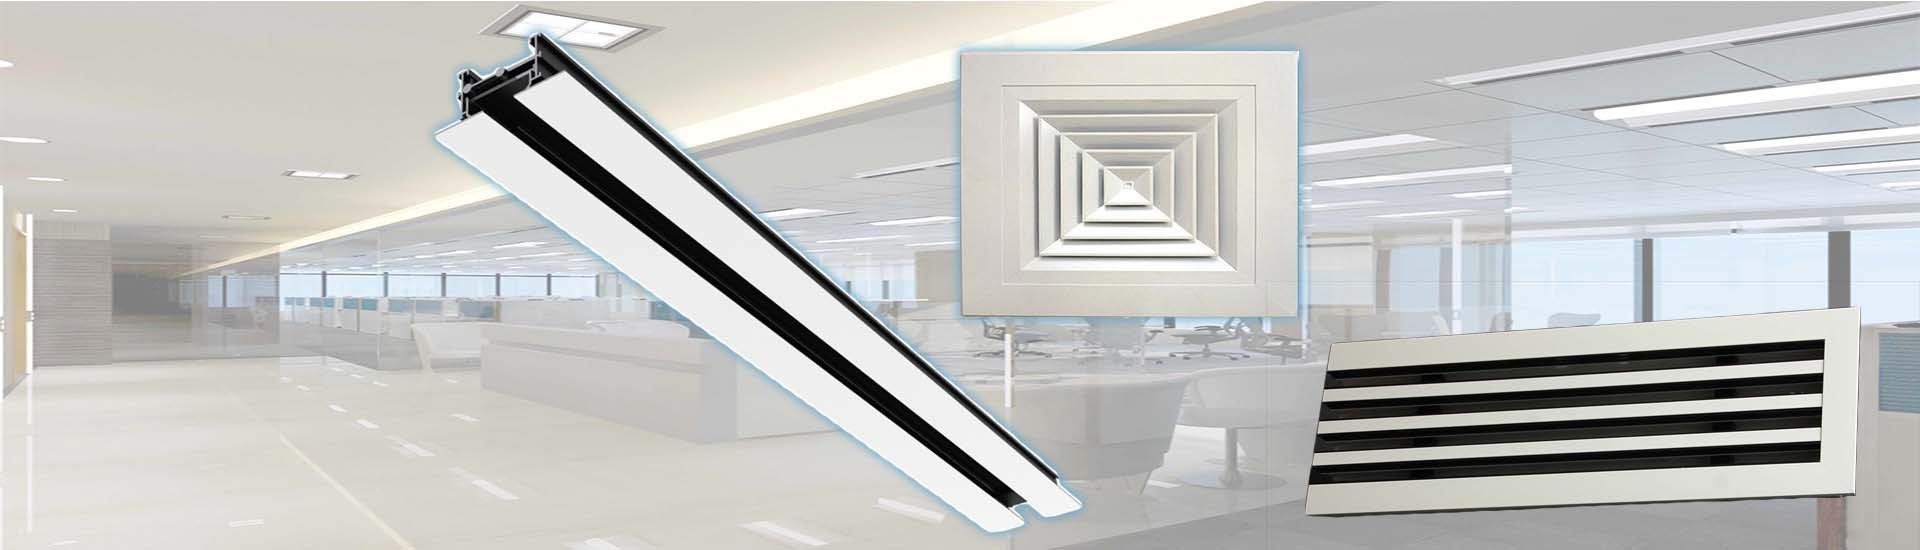 Things About Linear Slot Diffuser You Must Have To